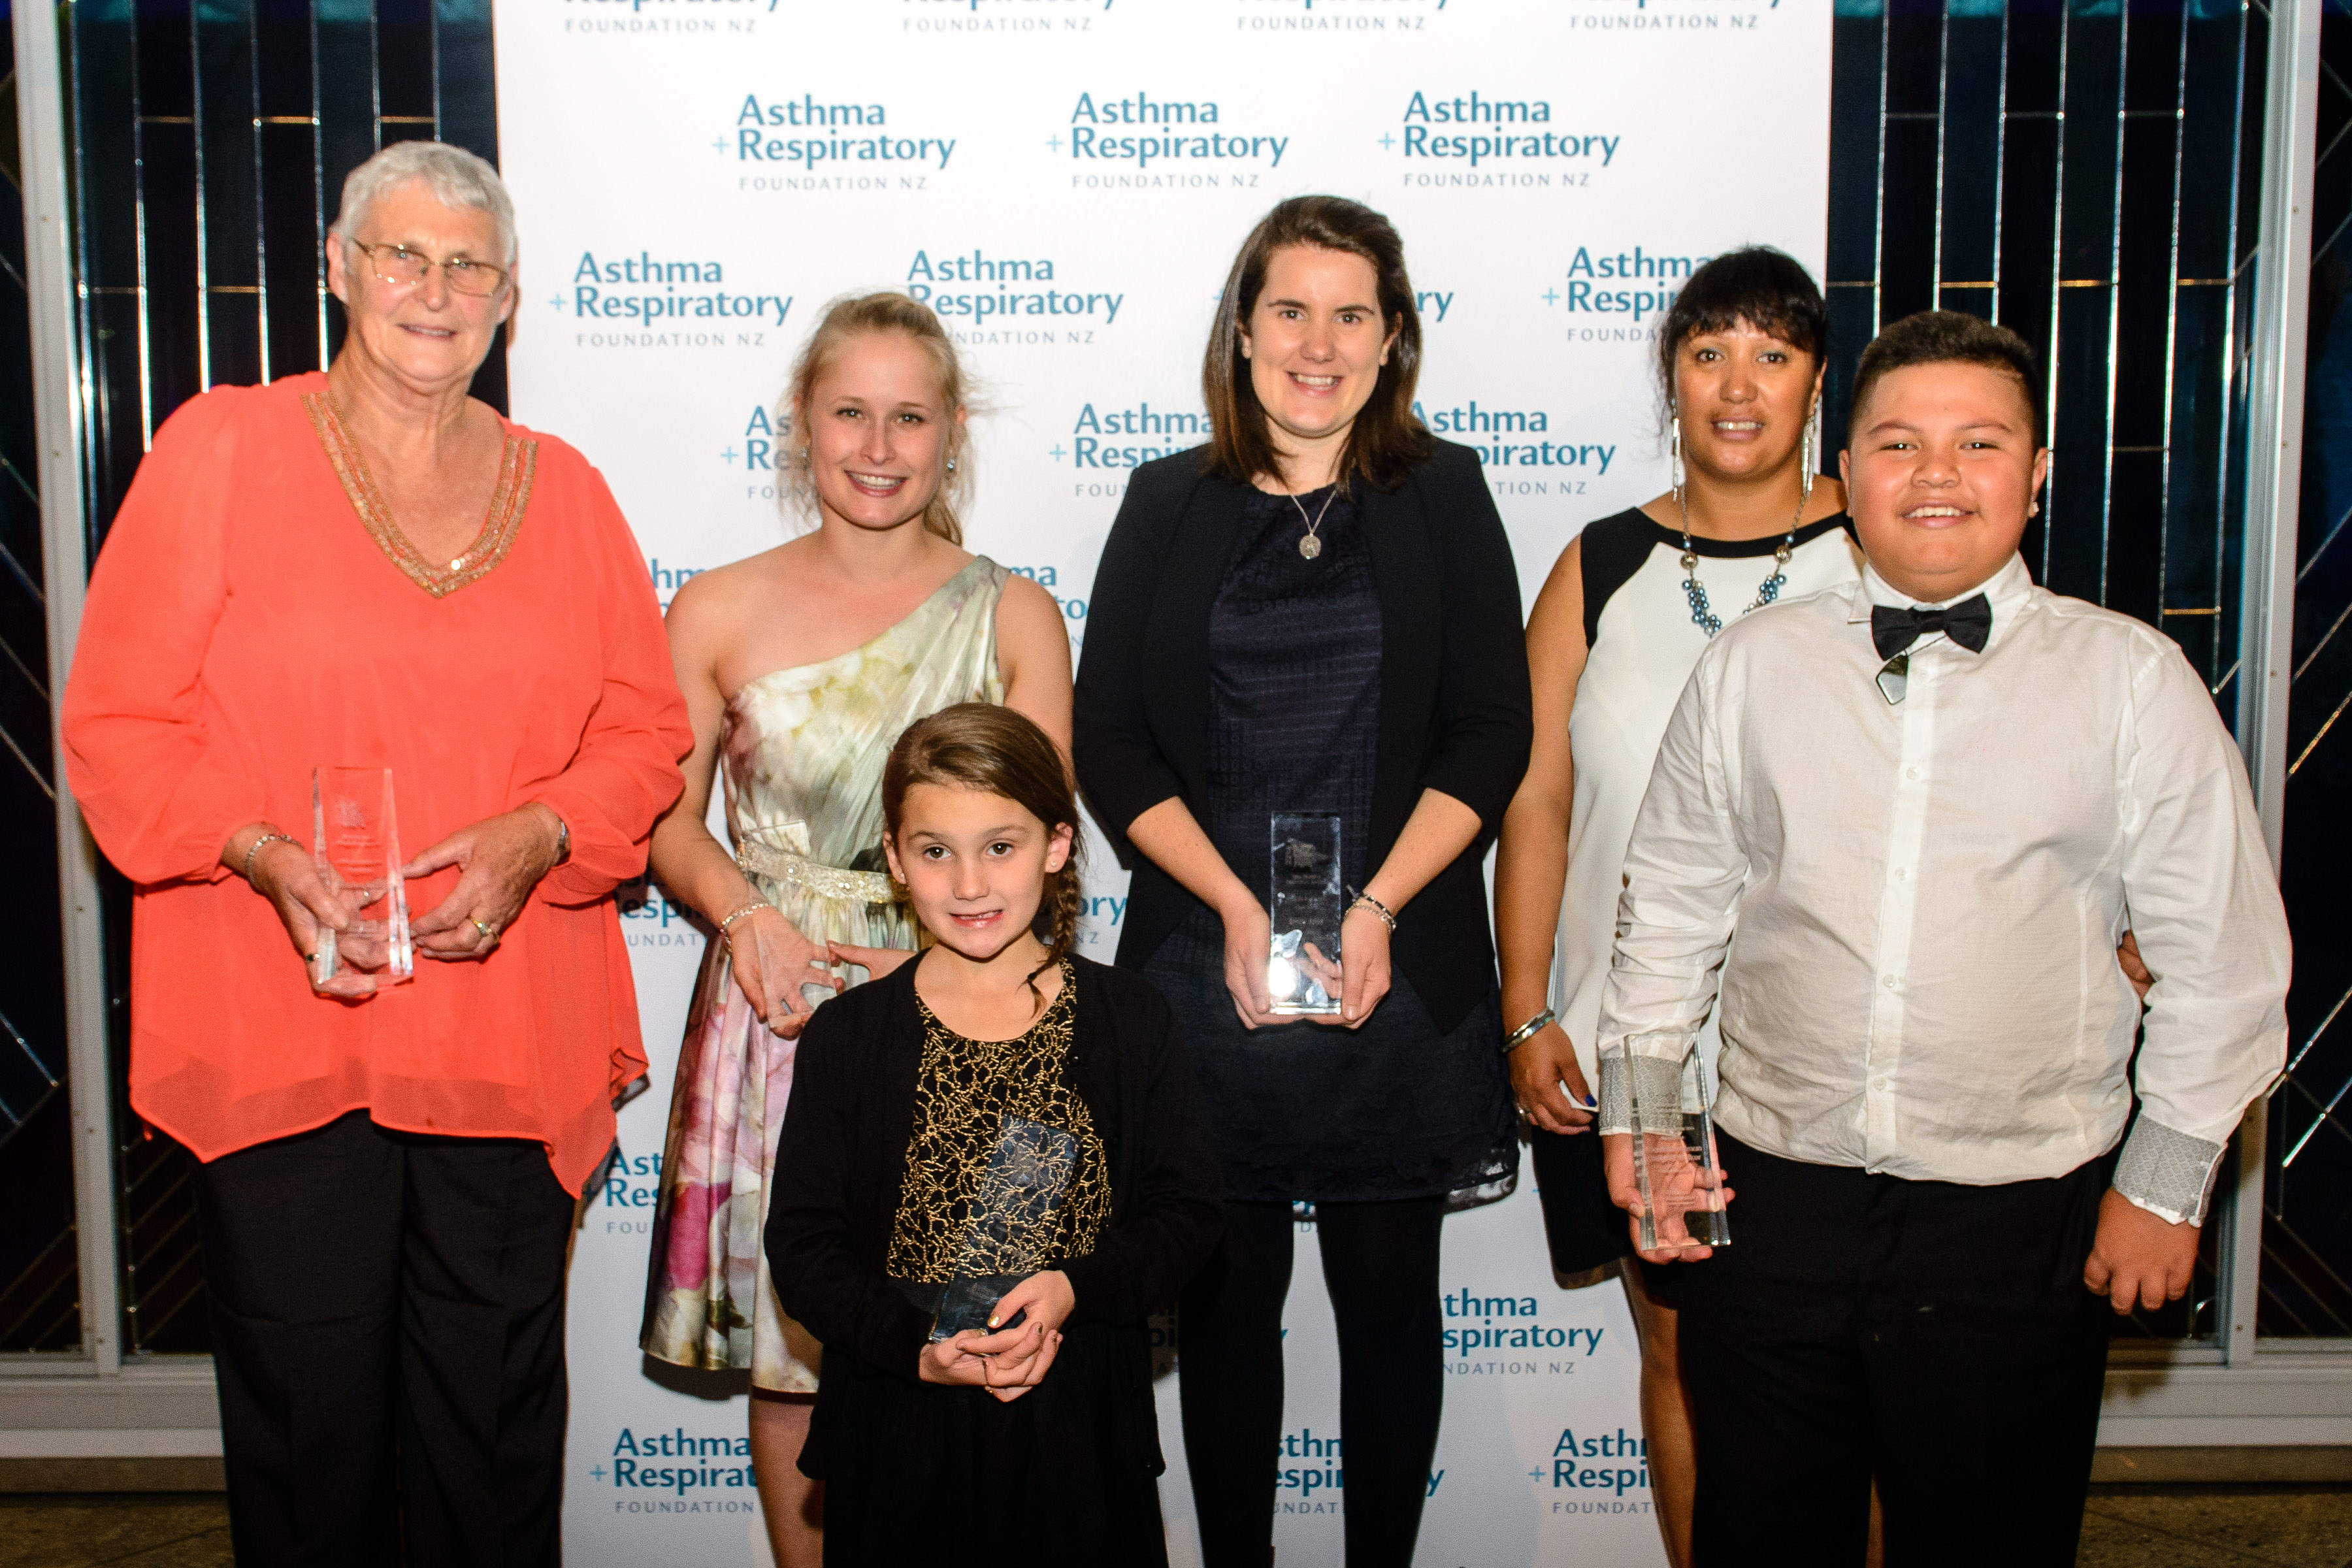 Canterbury woman takes out national respiratory award